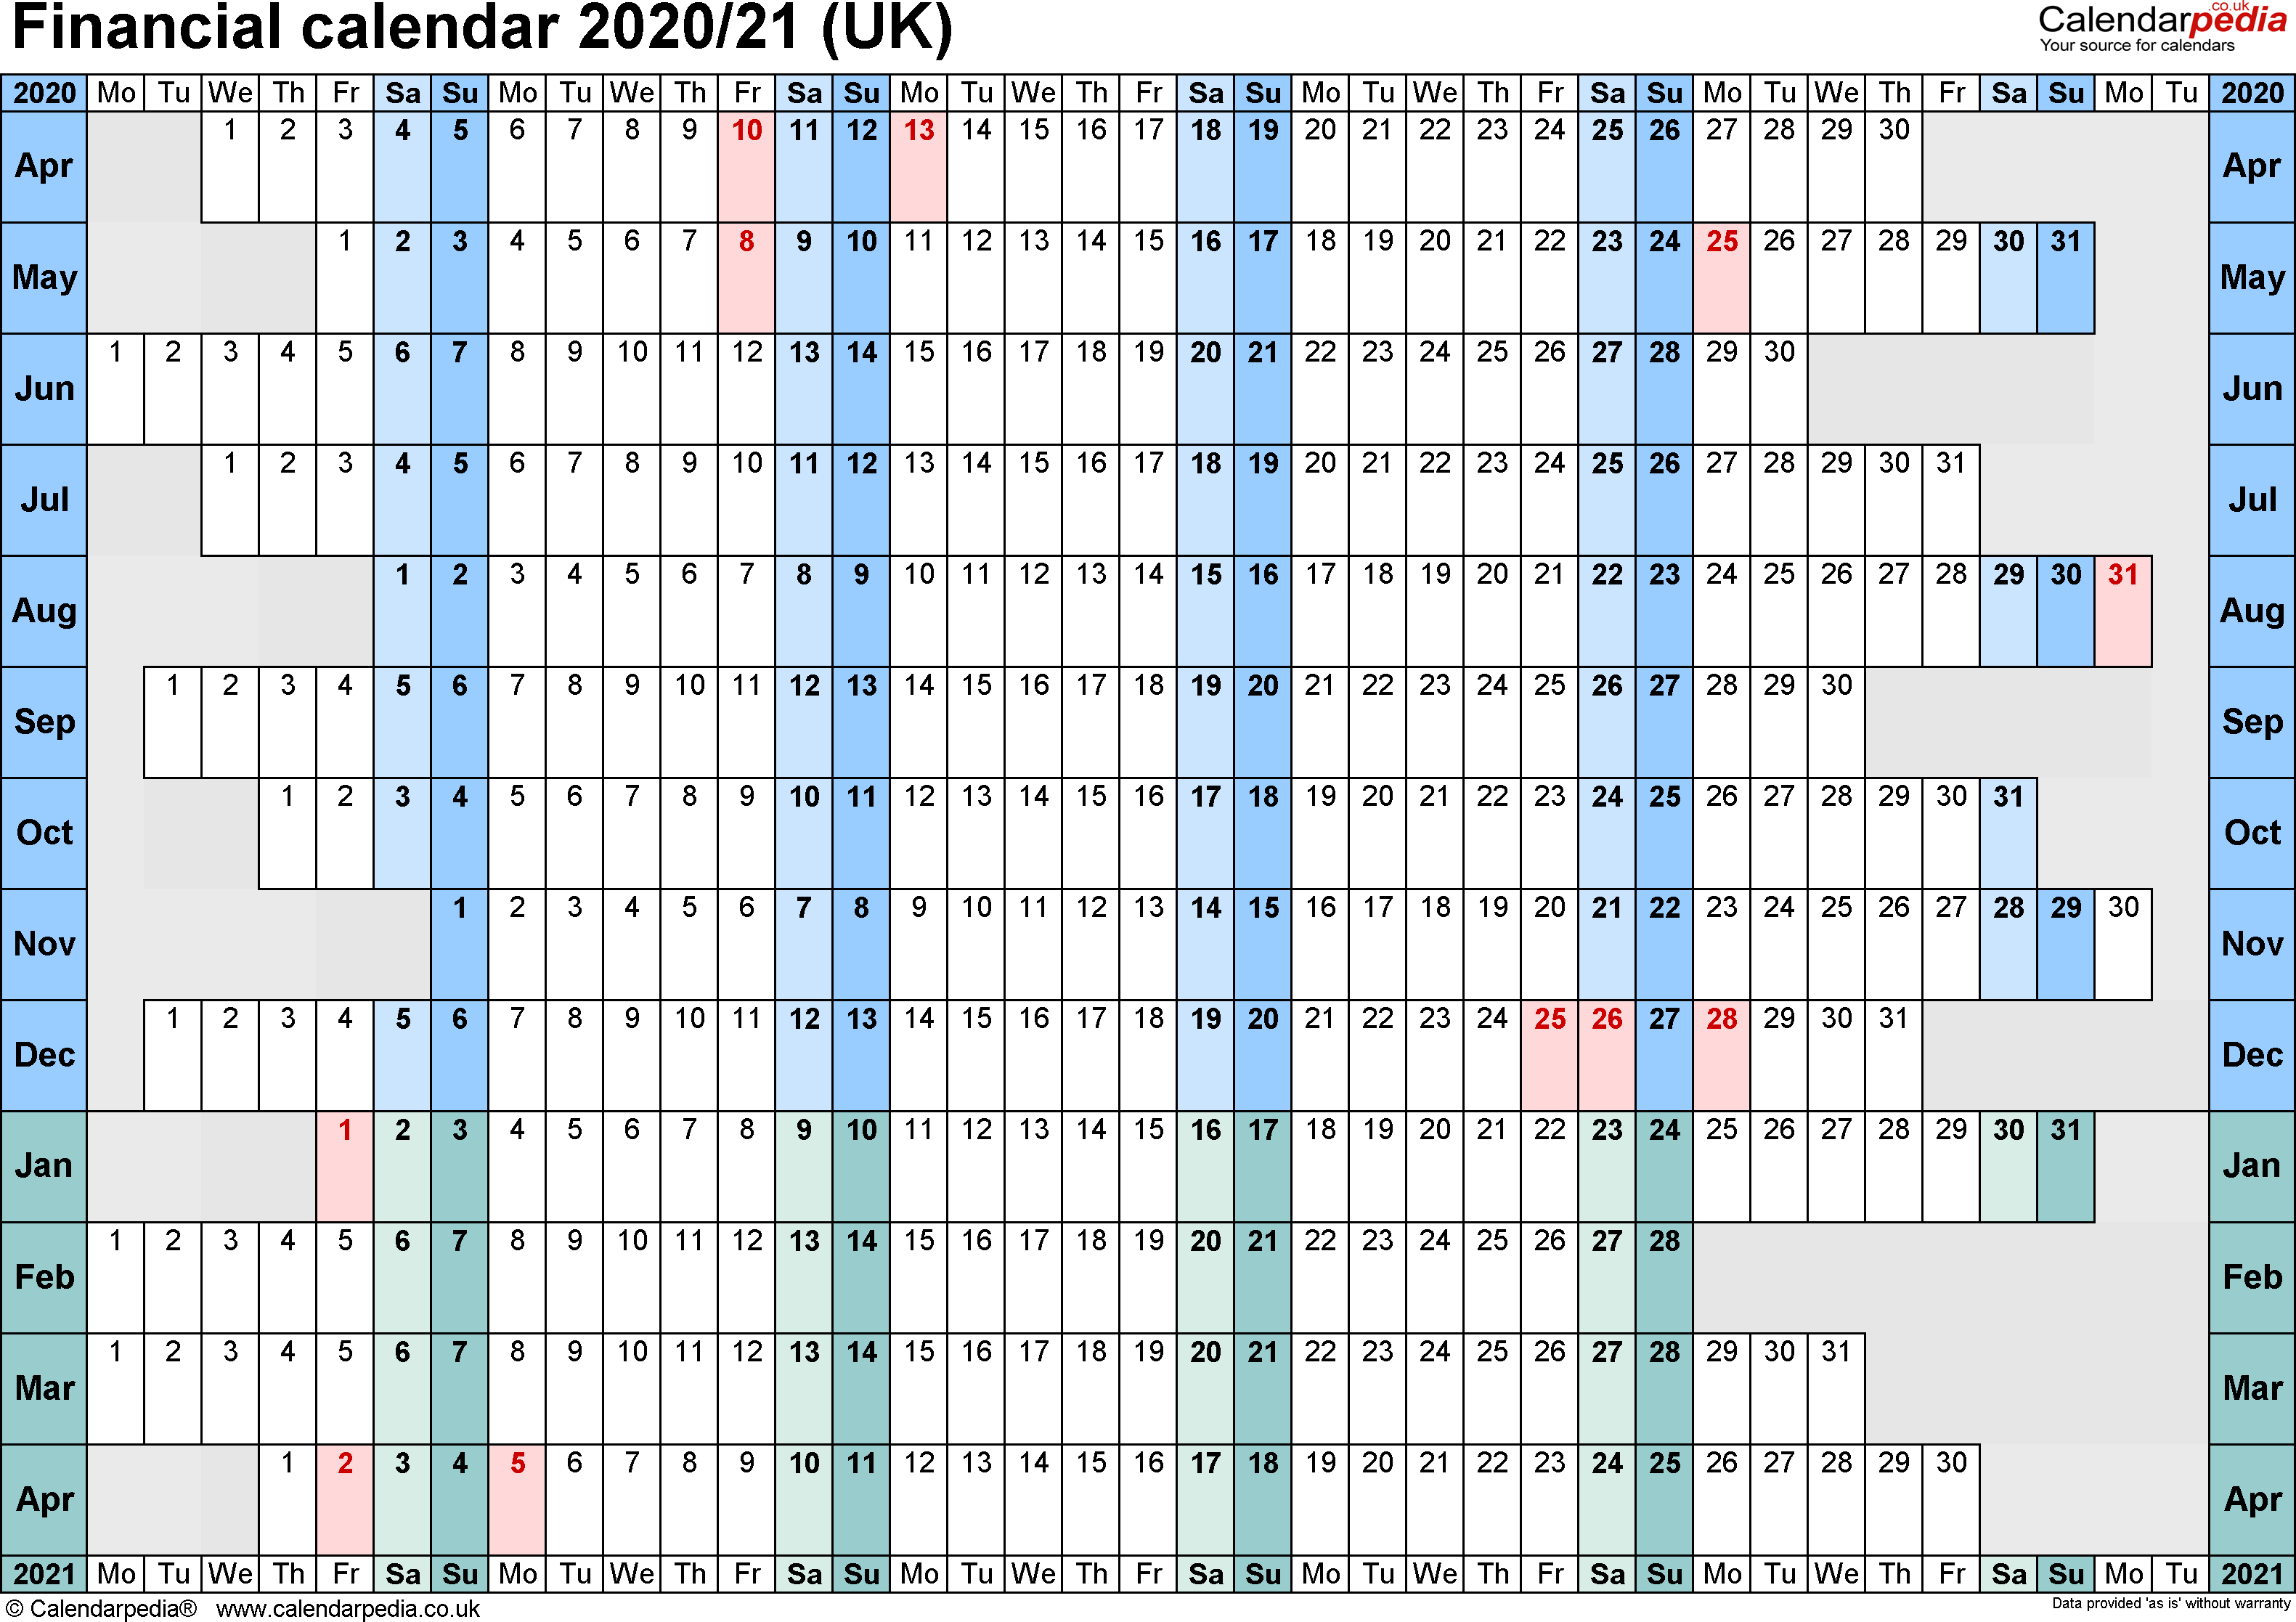 Financial Calendars 2020/21 (Uk) In Pdf Format for Hmrc Tax Weekly Calander 2019-2020